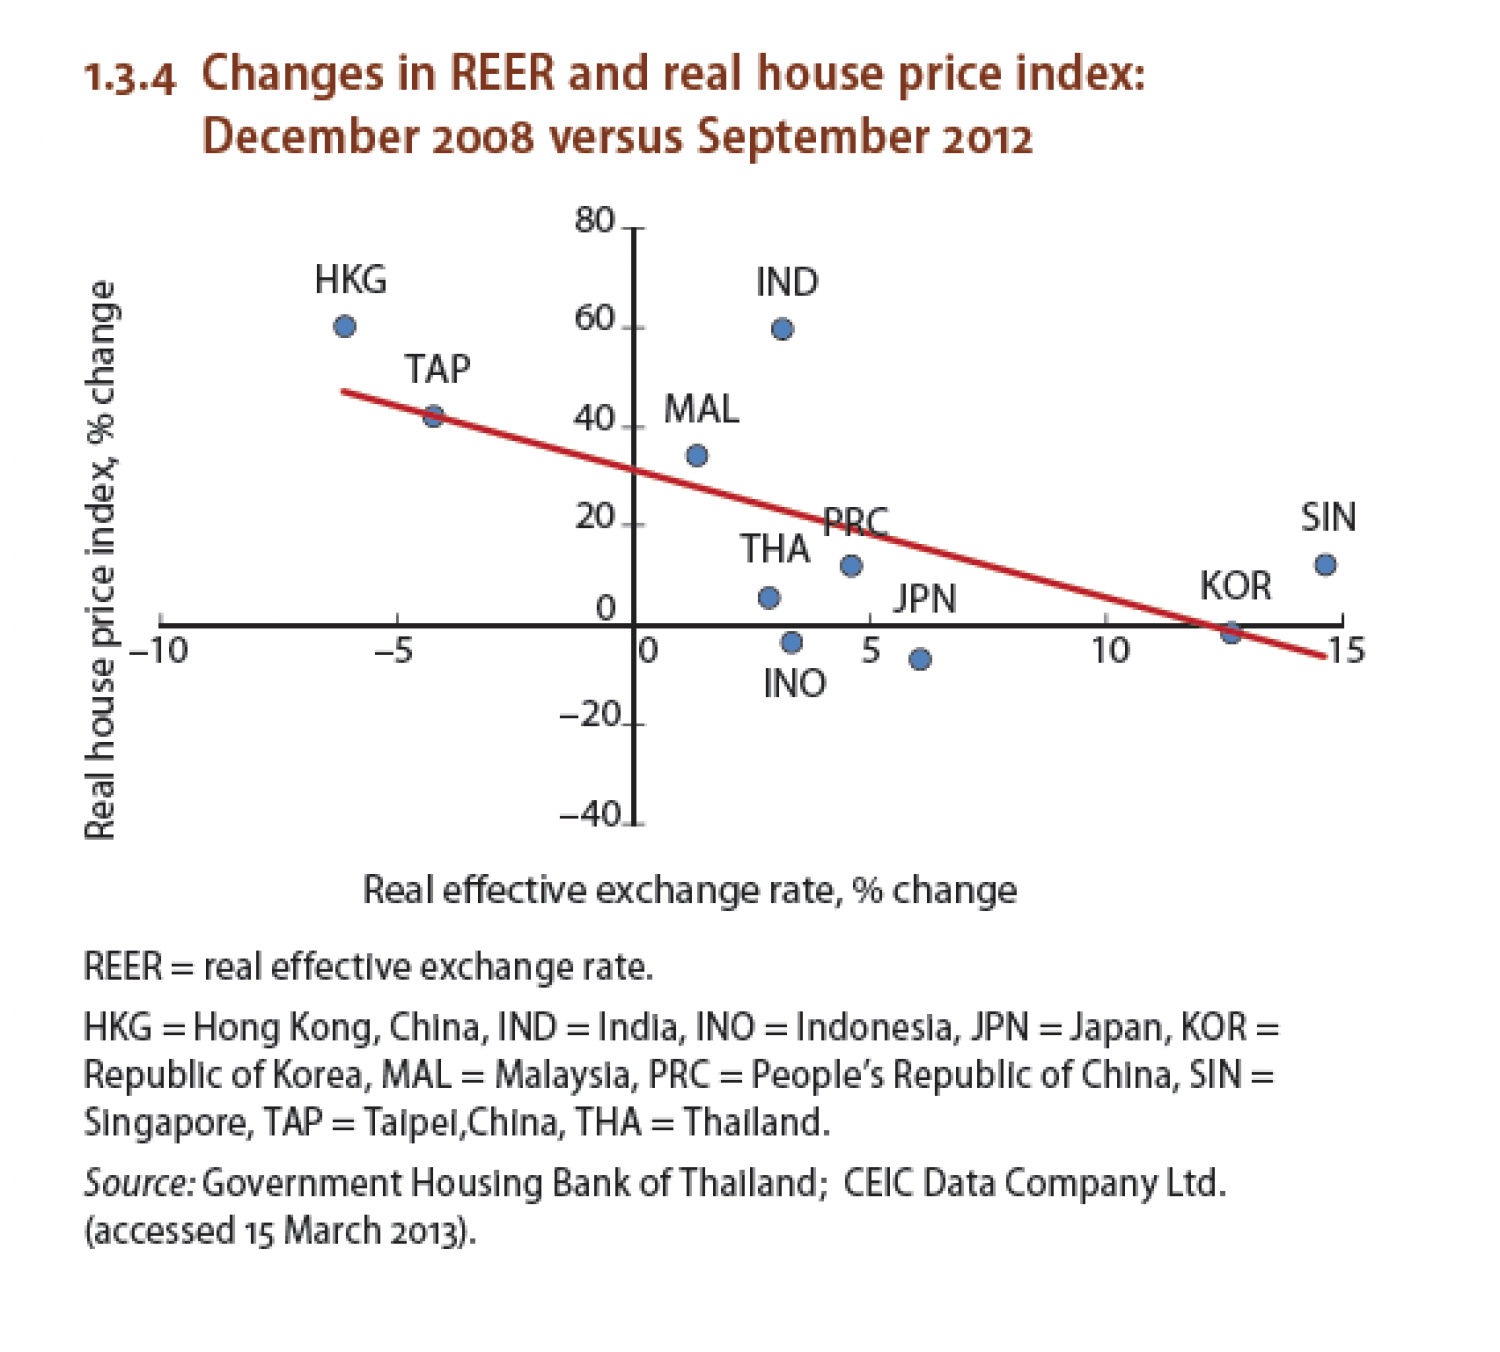 Changes in REER and real house price index (2008-2012) Infographic